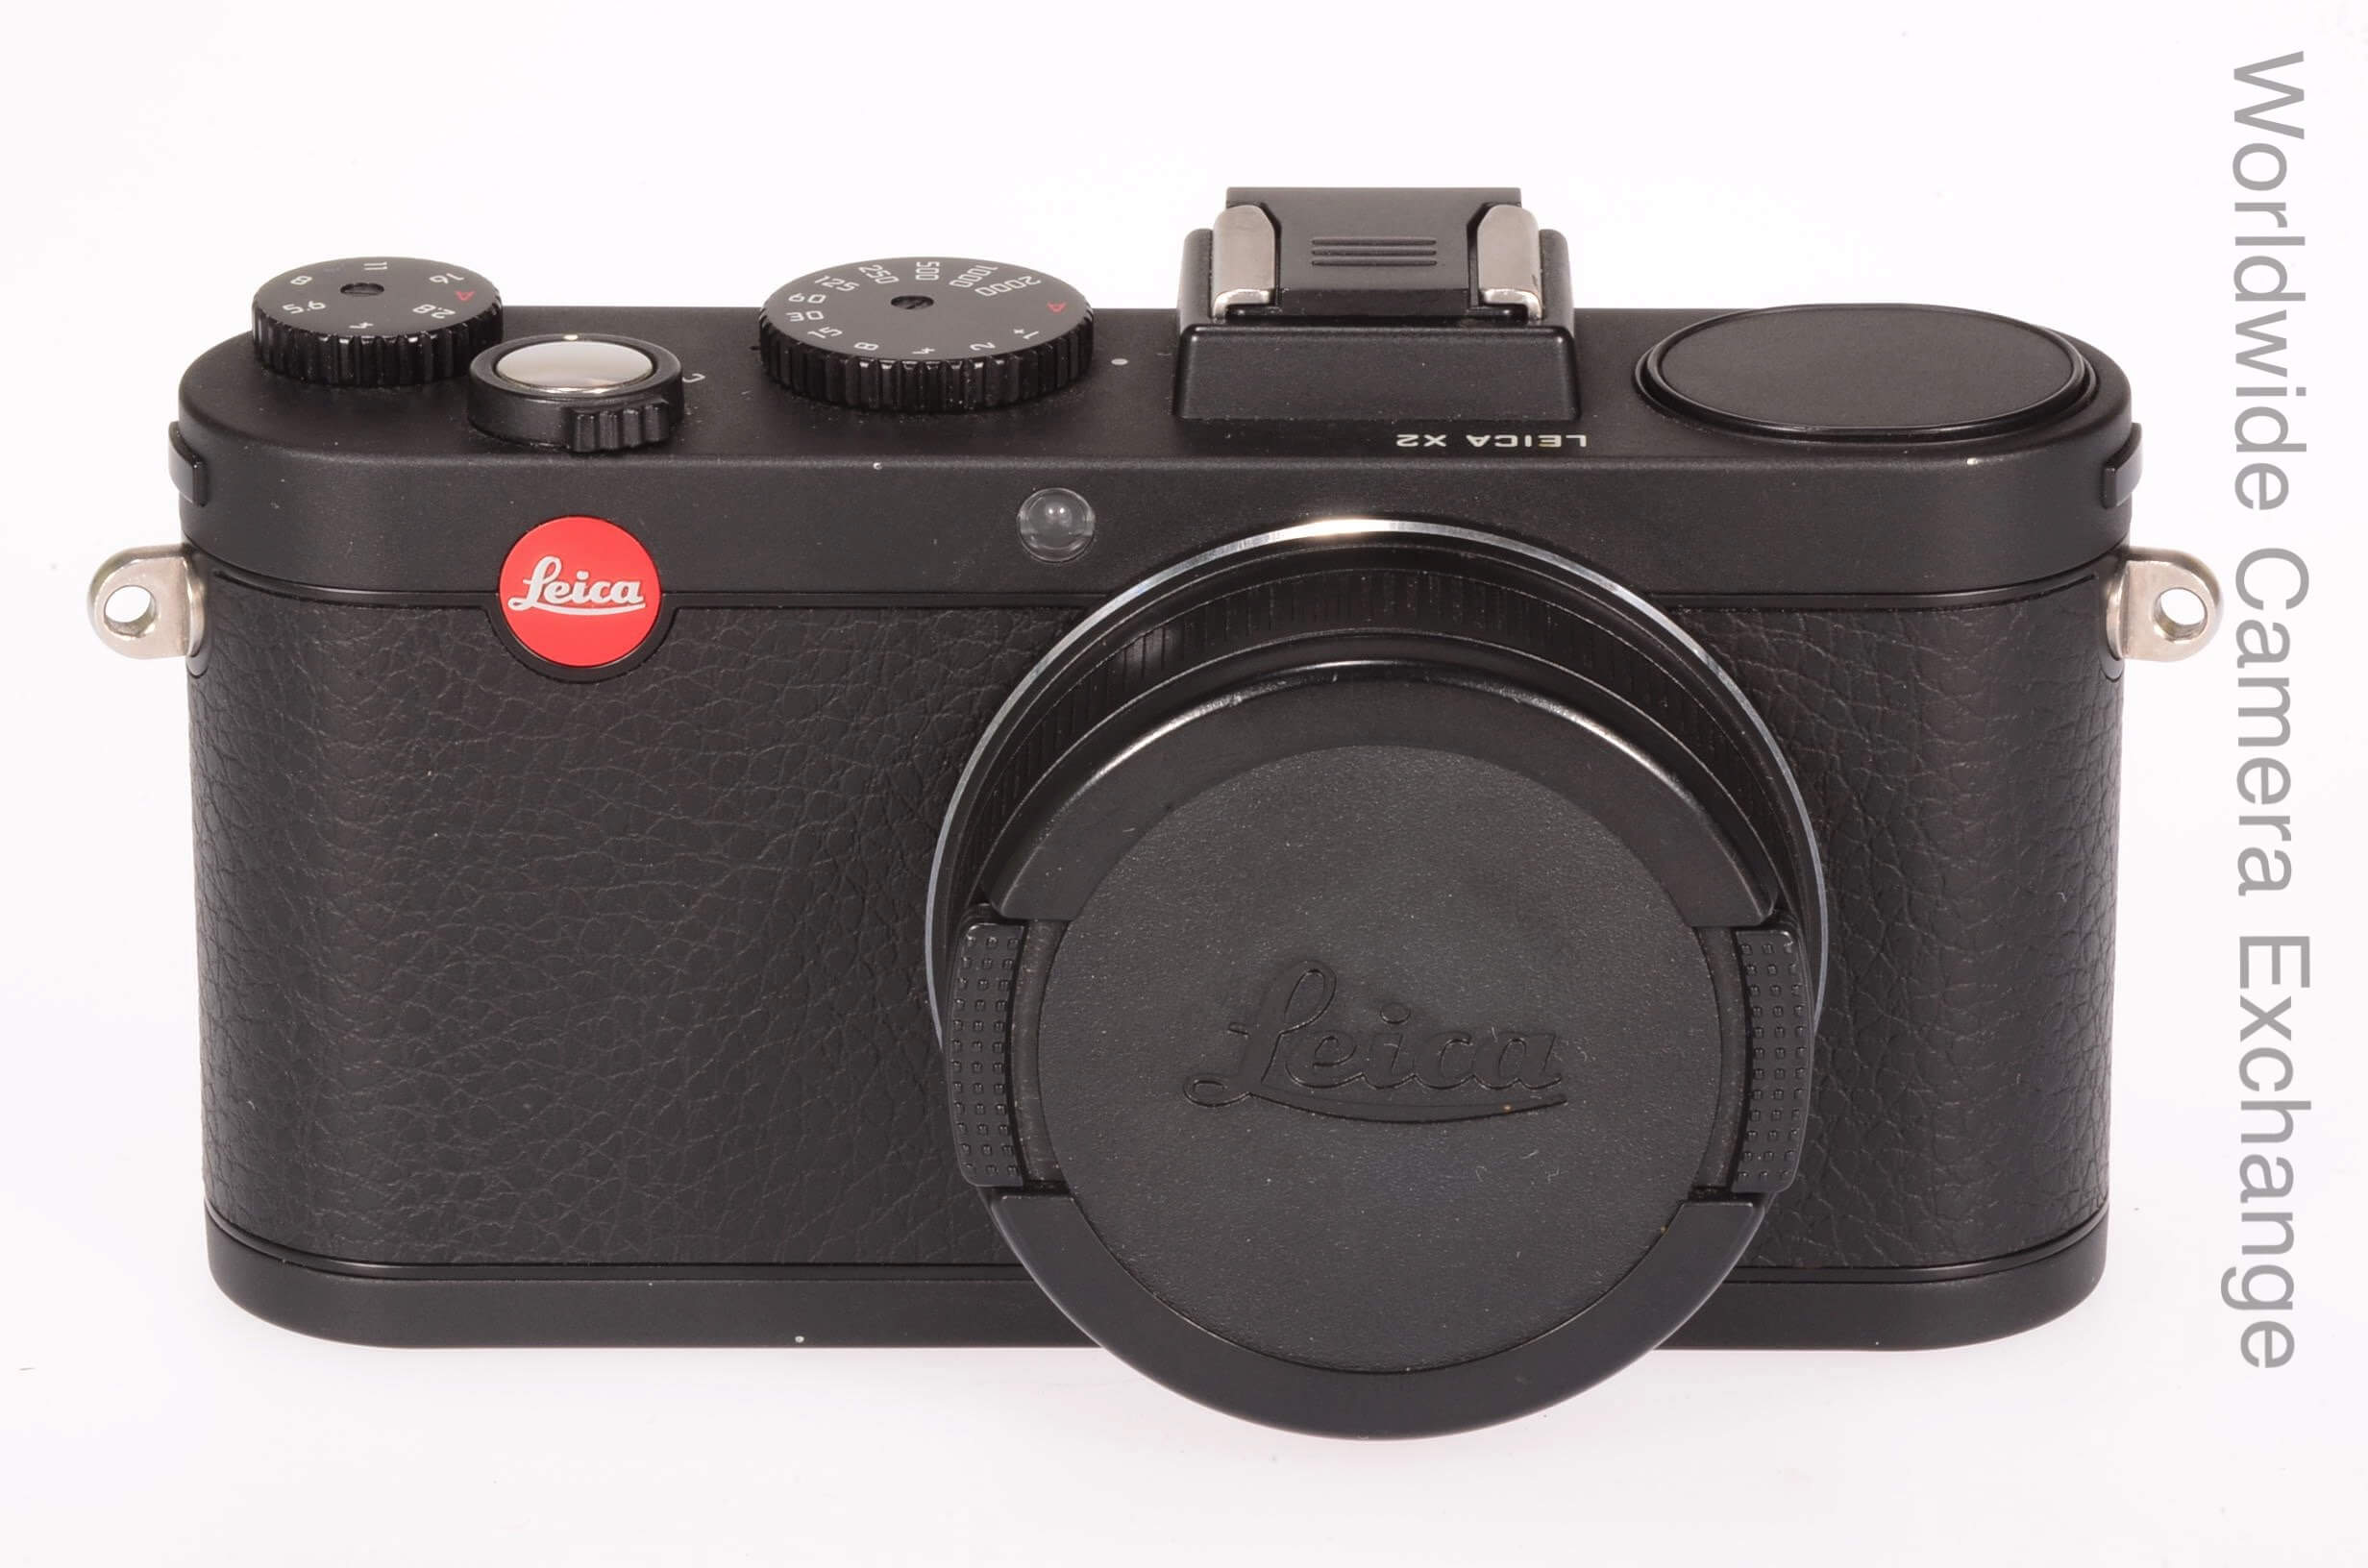 Leica X2 camera, superb condition, virtually mint!